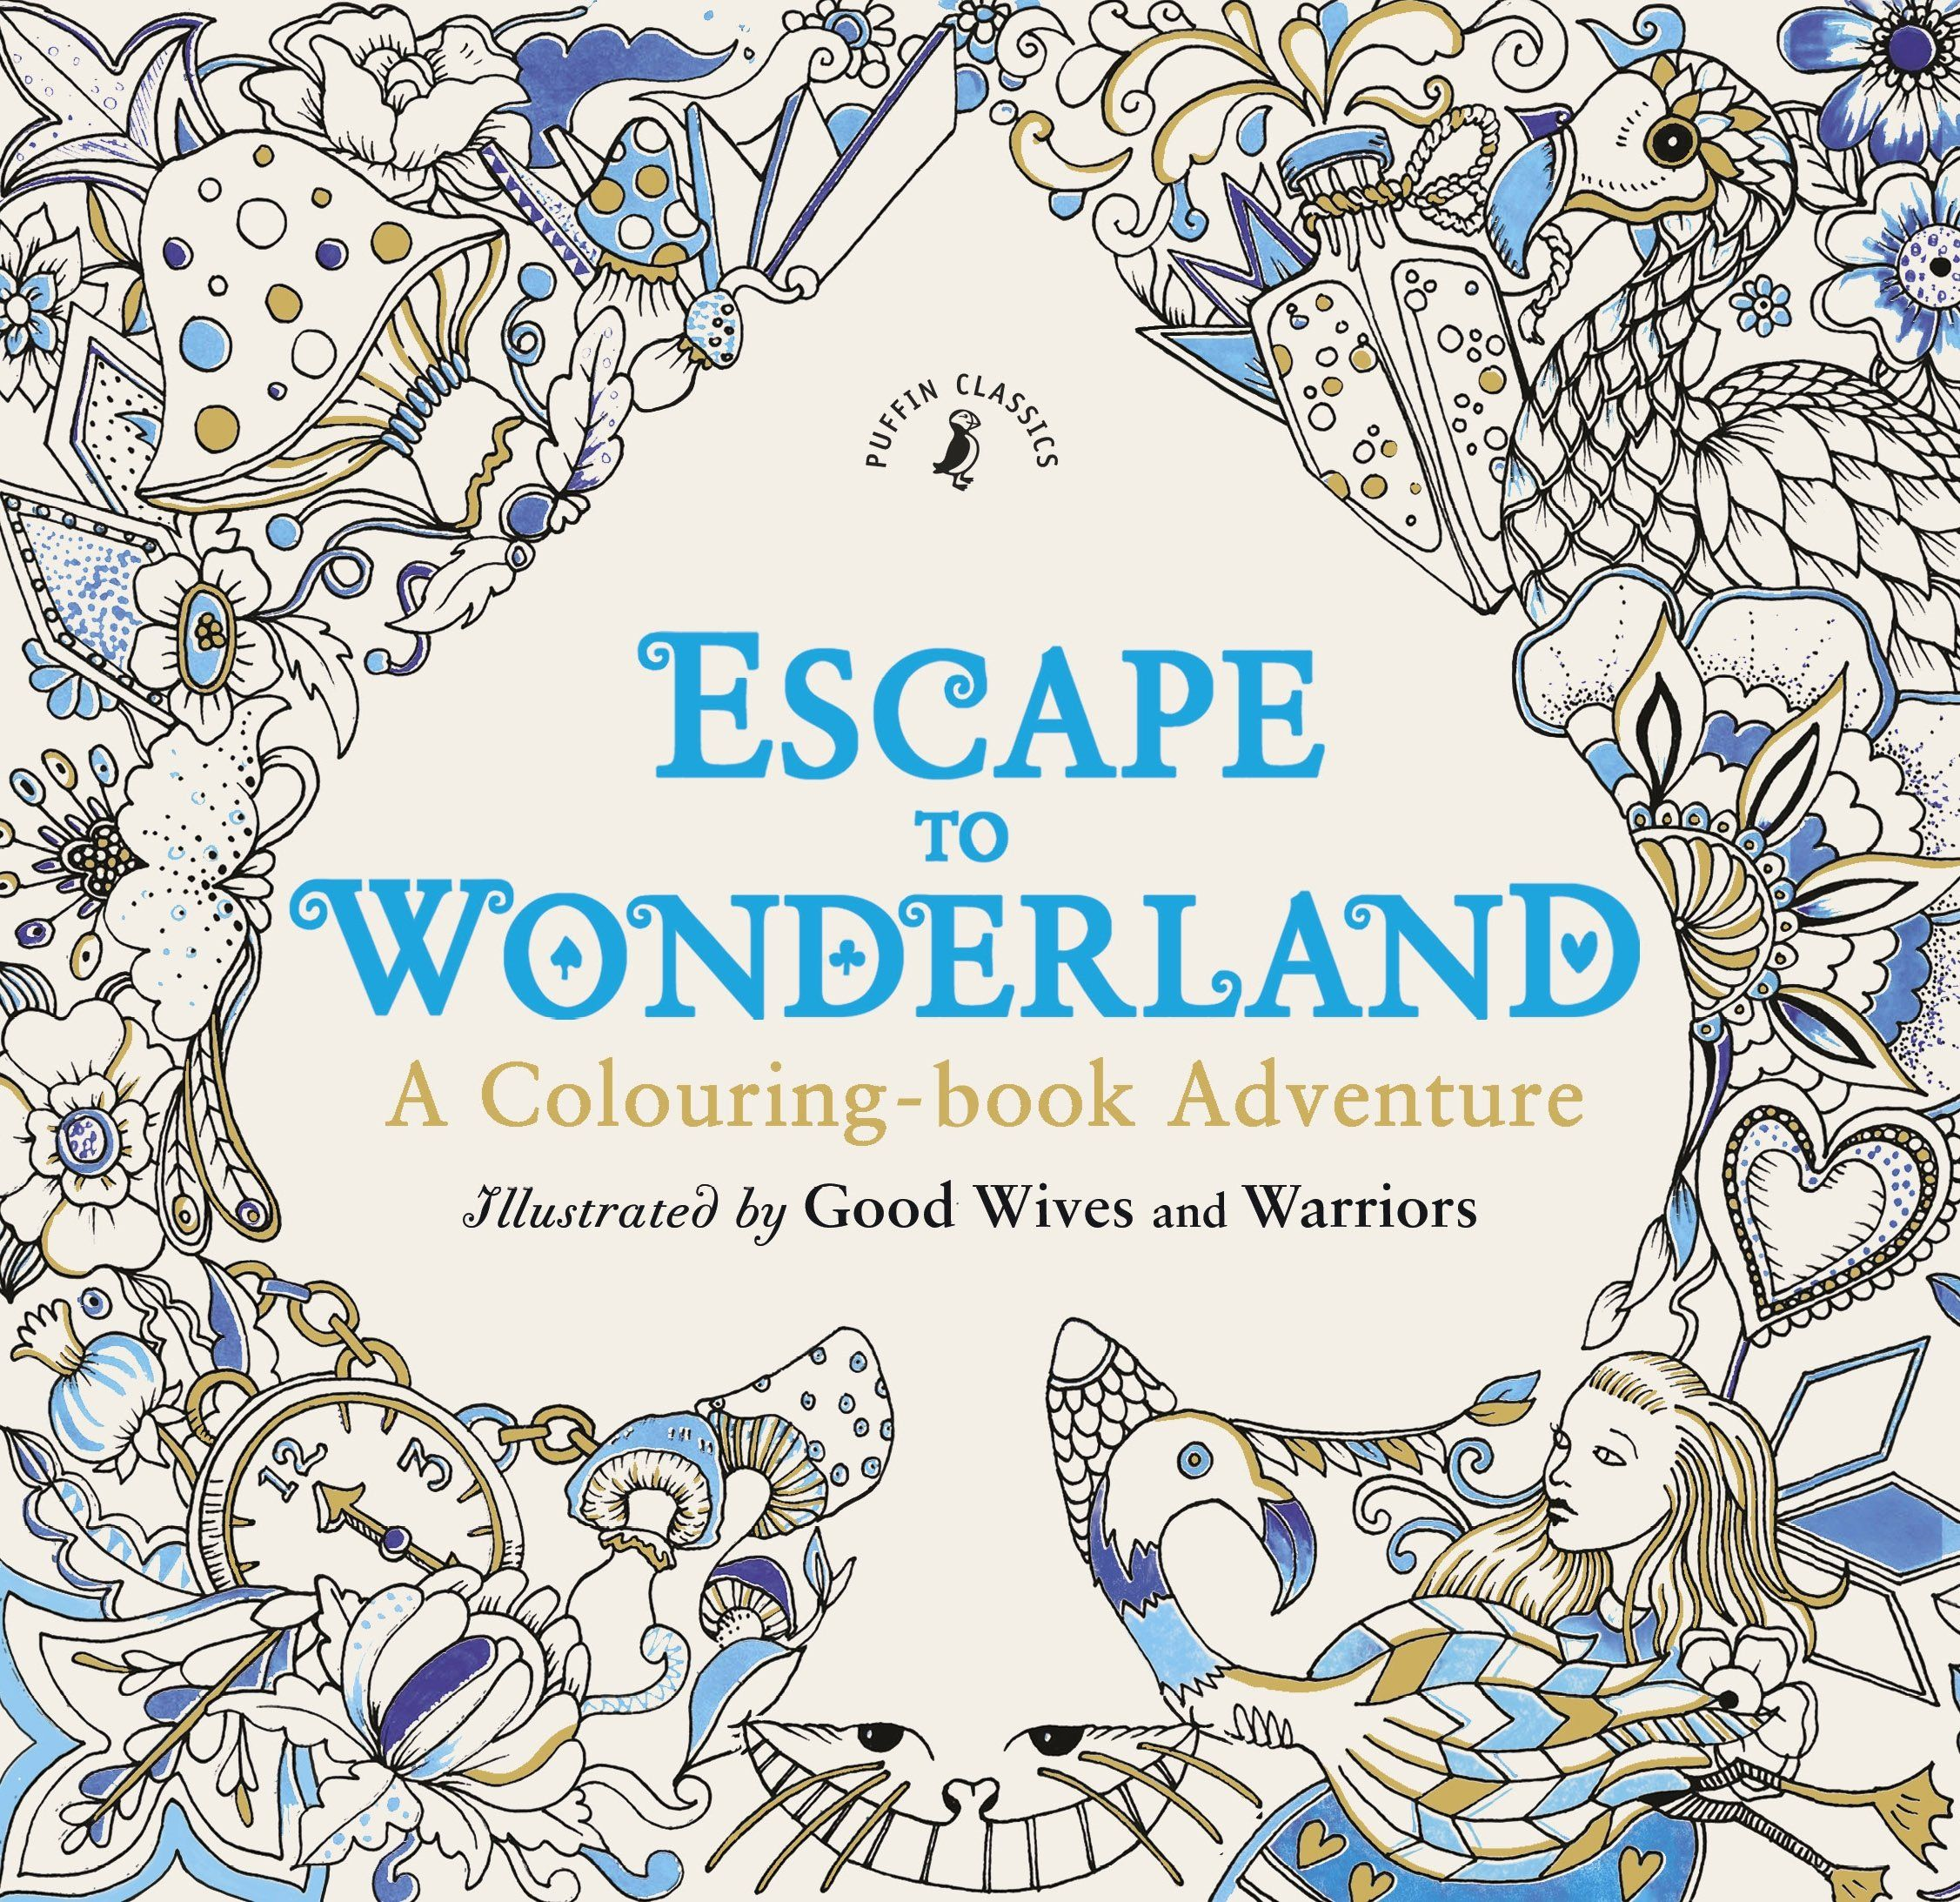 Escape to Wonderland: A Colouring Book Adventure: Amazon.co.uk: Good ...